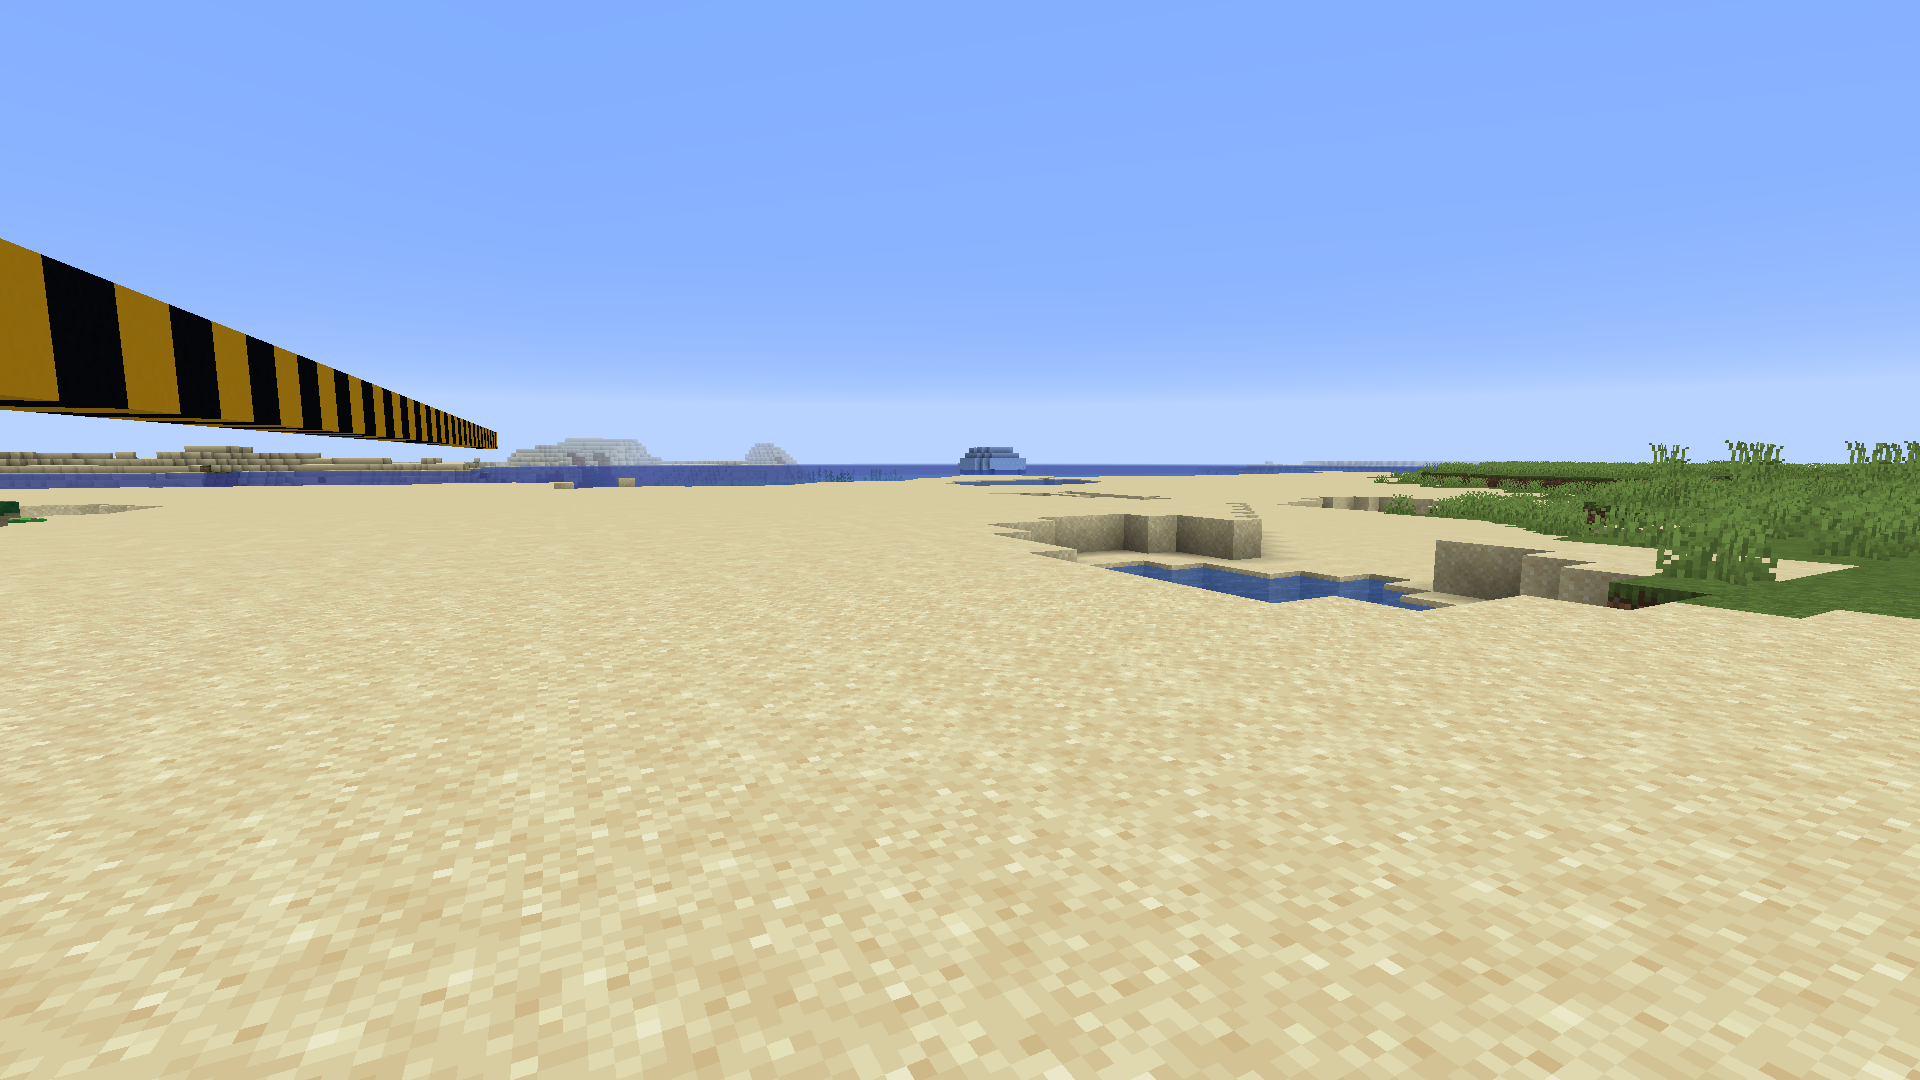 MC-147975] Beaches Are Huge With Large Biomes Generation - Jira